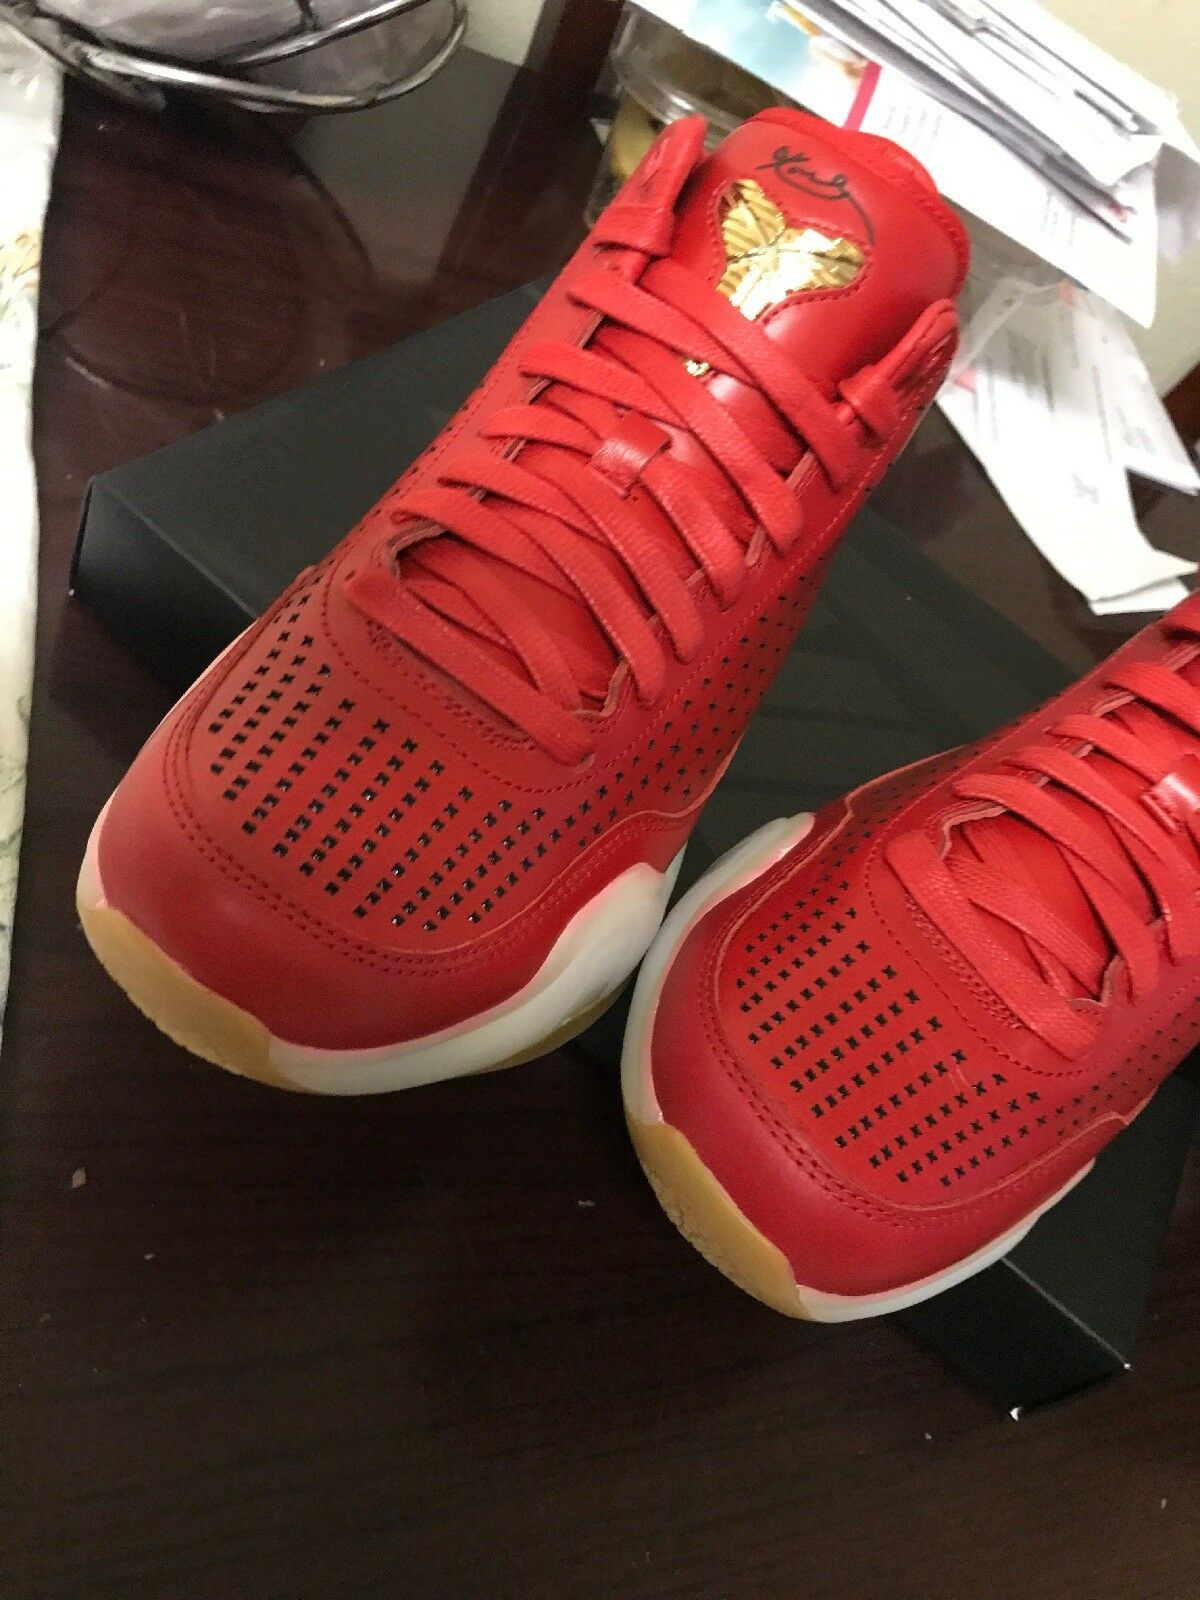 NIKE KOBE X 10 RED MID EXT MENS SHOES SIZE 10 LOT KD LEBRON JORDAN RETRO YEEZY best-selling model of the brand